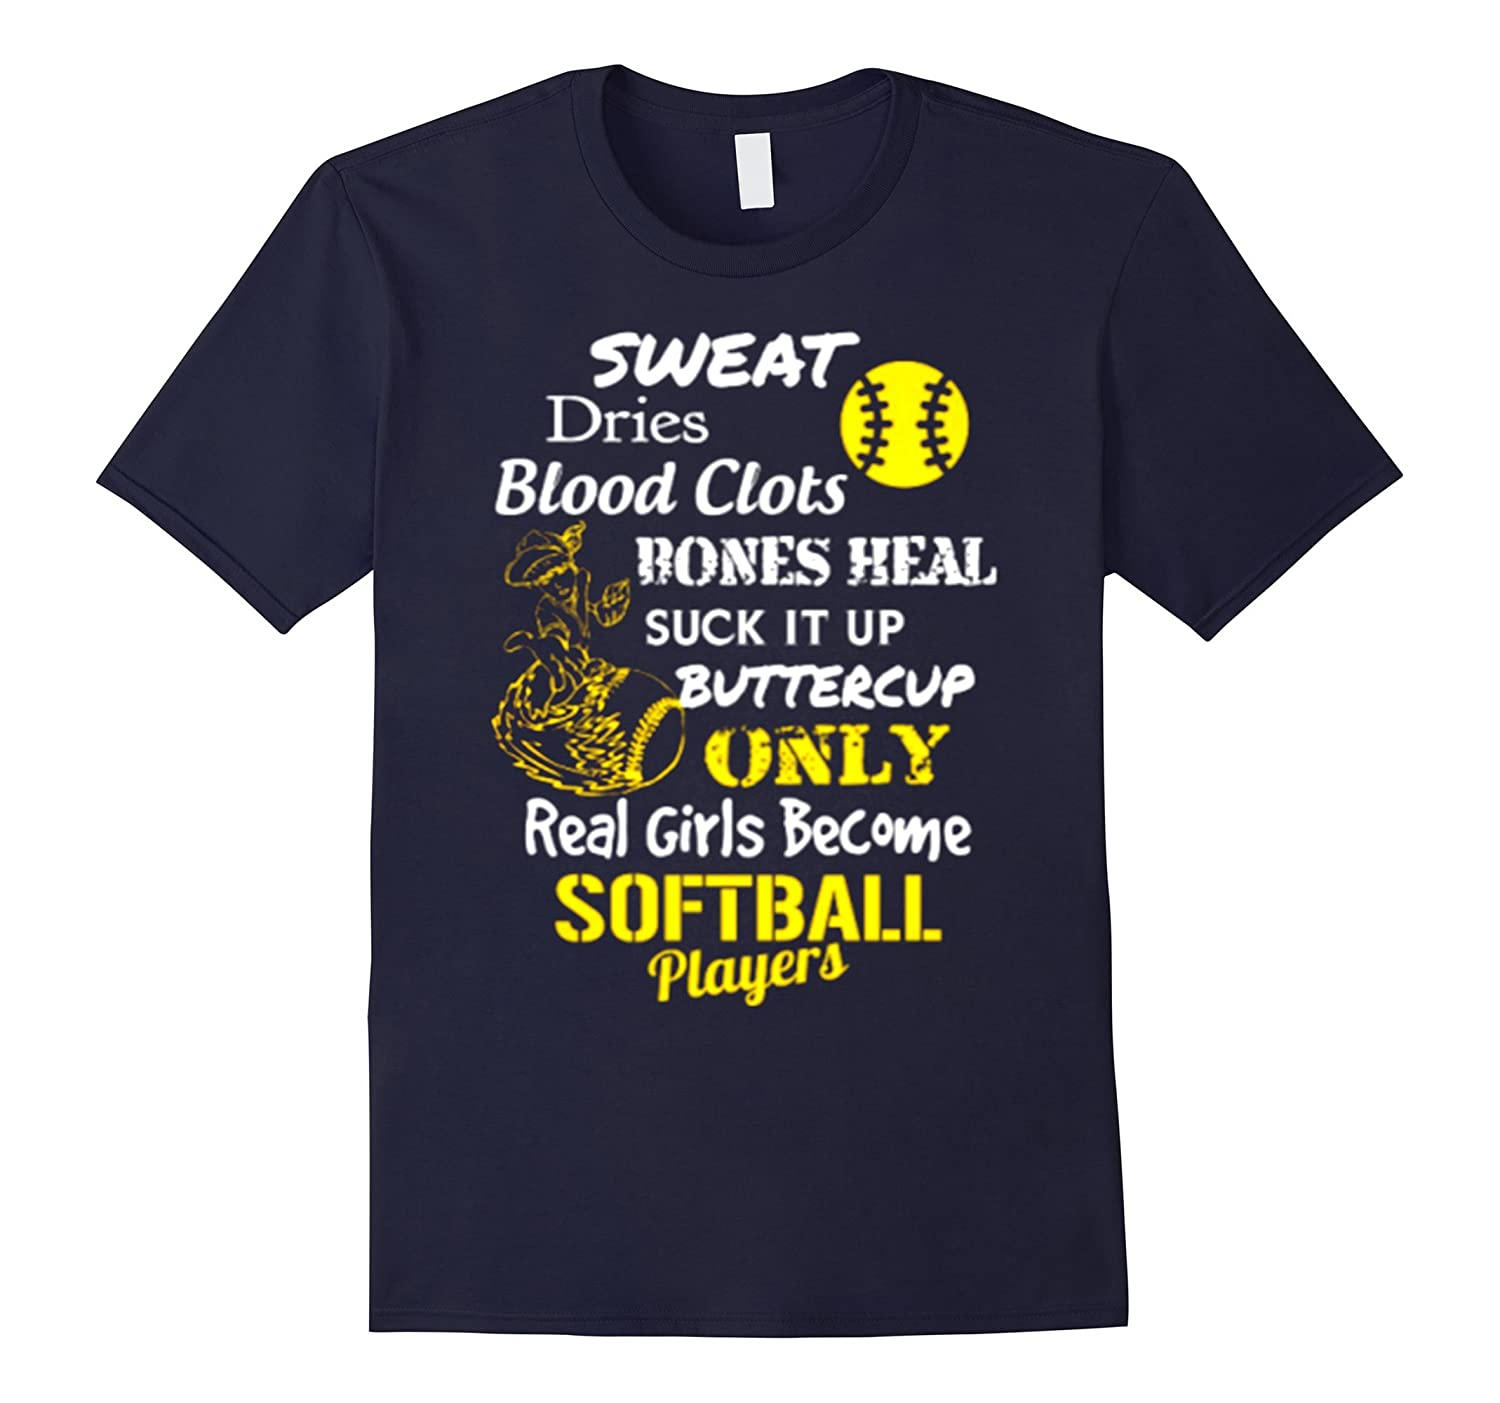 Real Girls Become Softball Players t shirt hoodie gift-BN